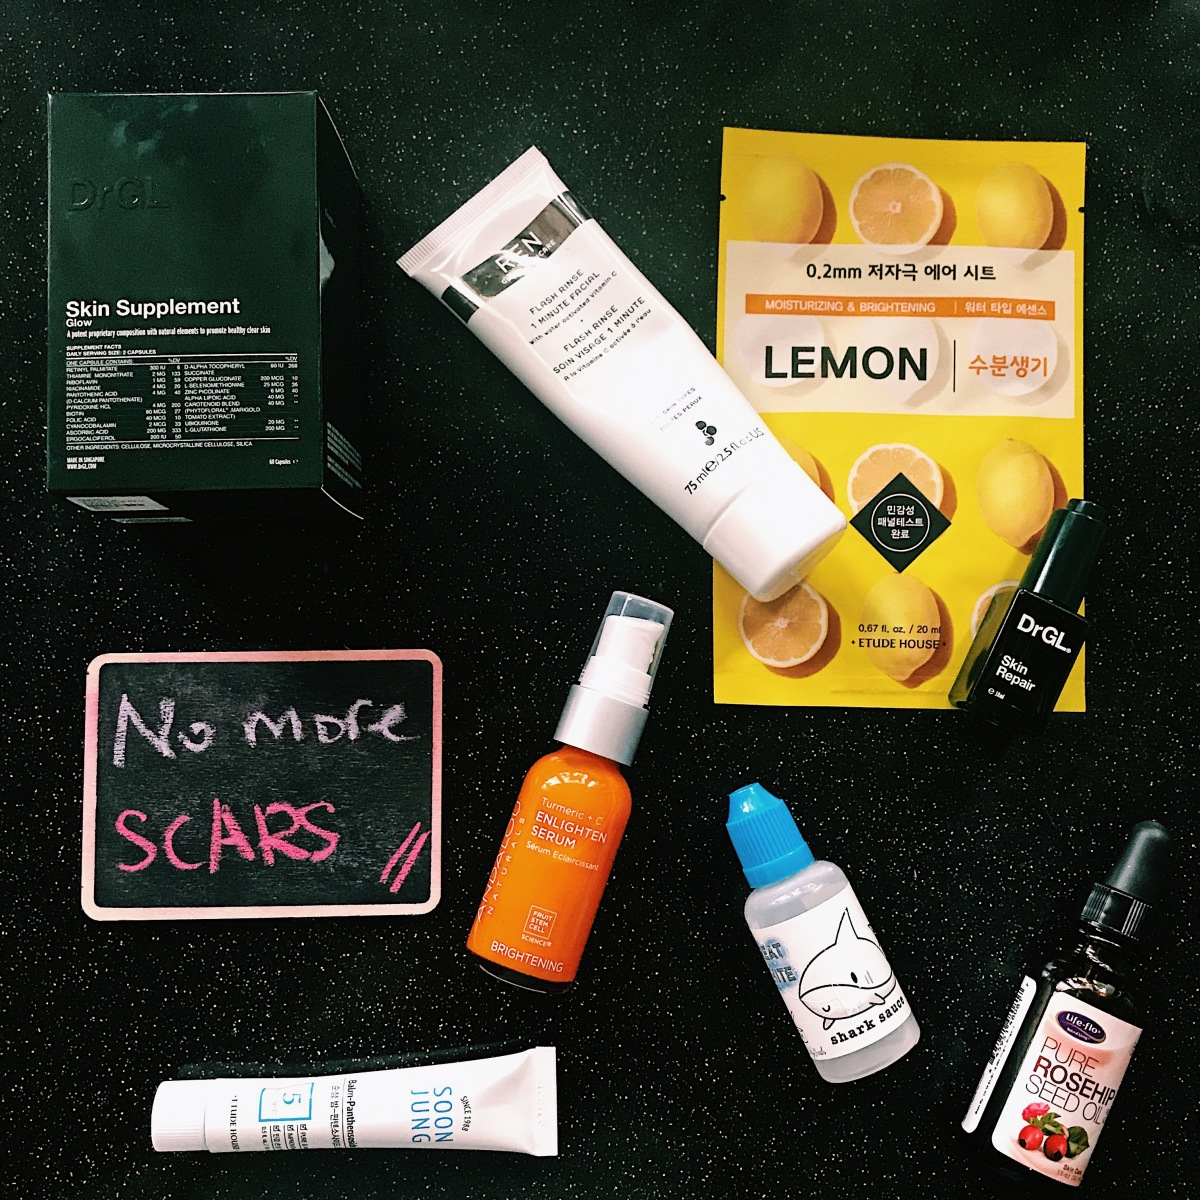 [GO4GLOW Vitamin C spotlight]: The only 5 things you will ever need to heal your acne scars